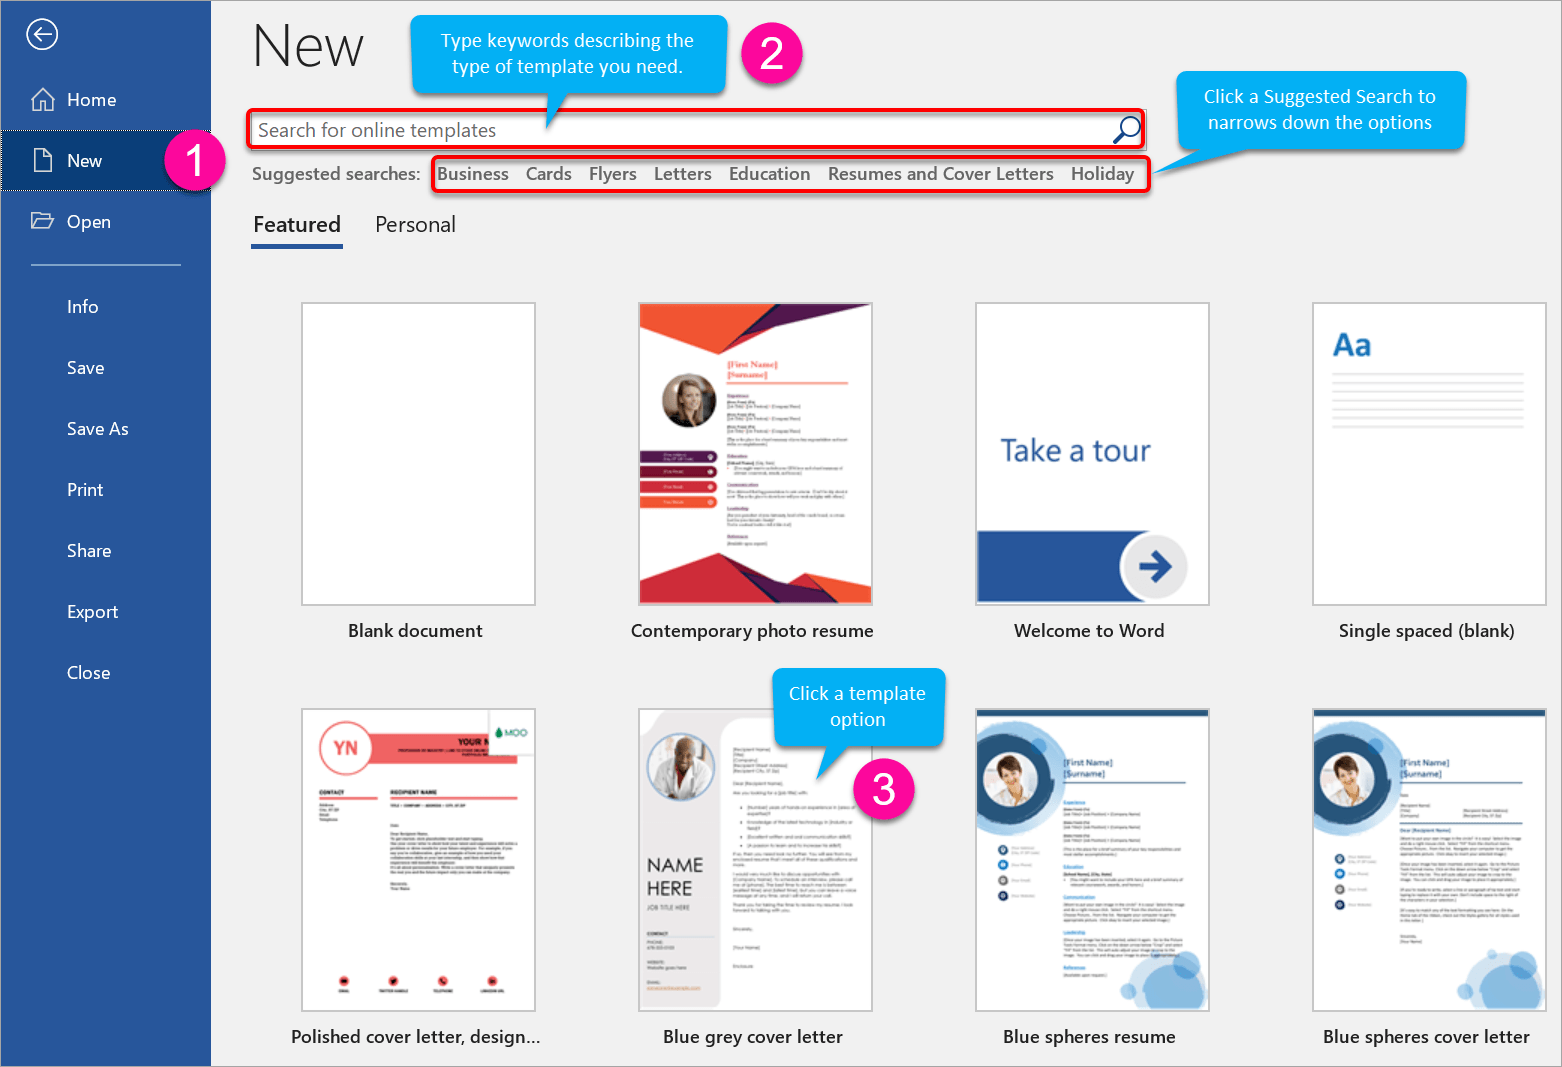 How to create a new Word document from a template